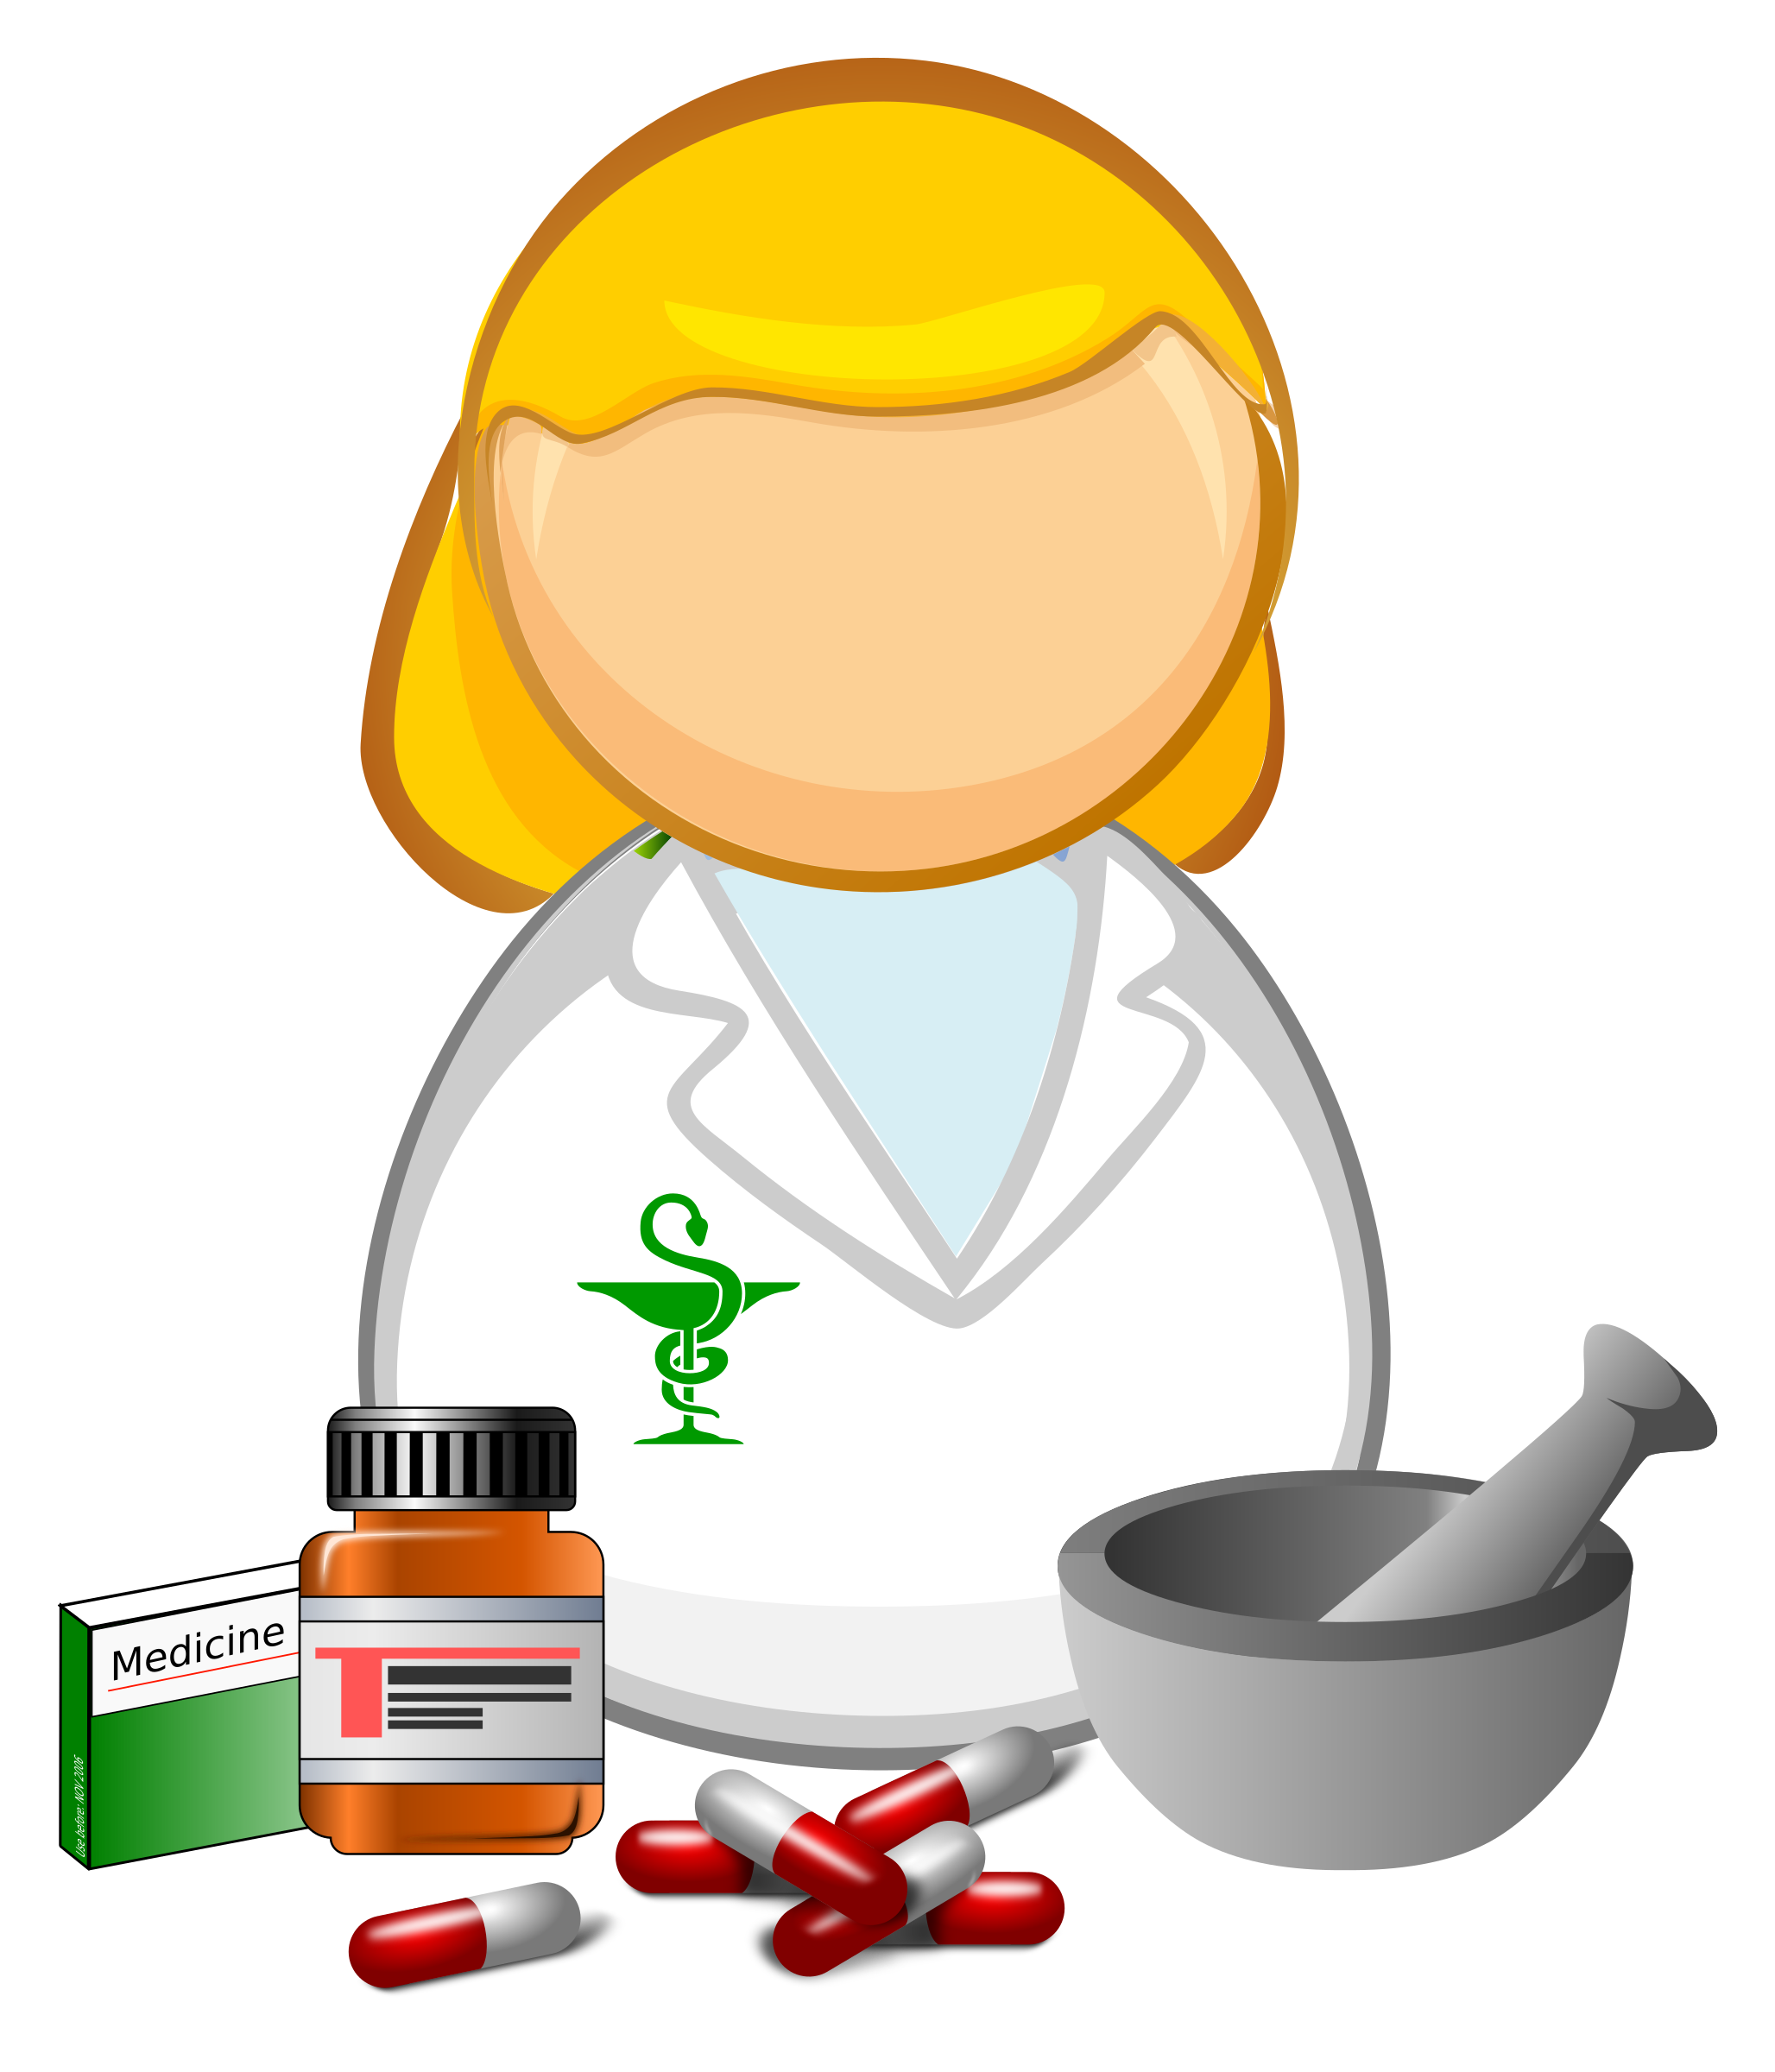 Apothecary pharmacist icons png. Pharmacy clipart pharmacy service